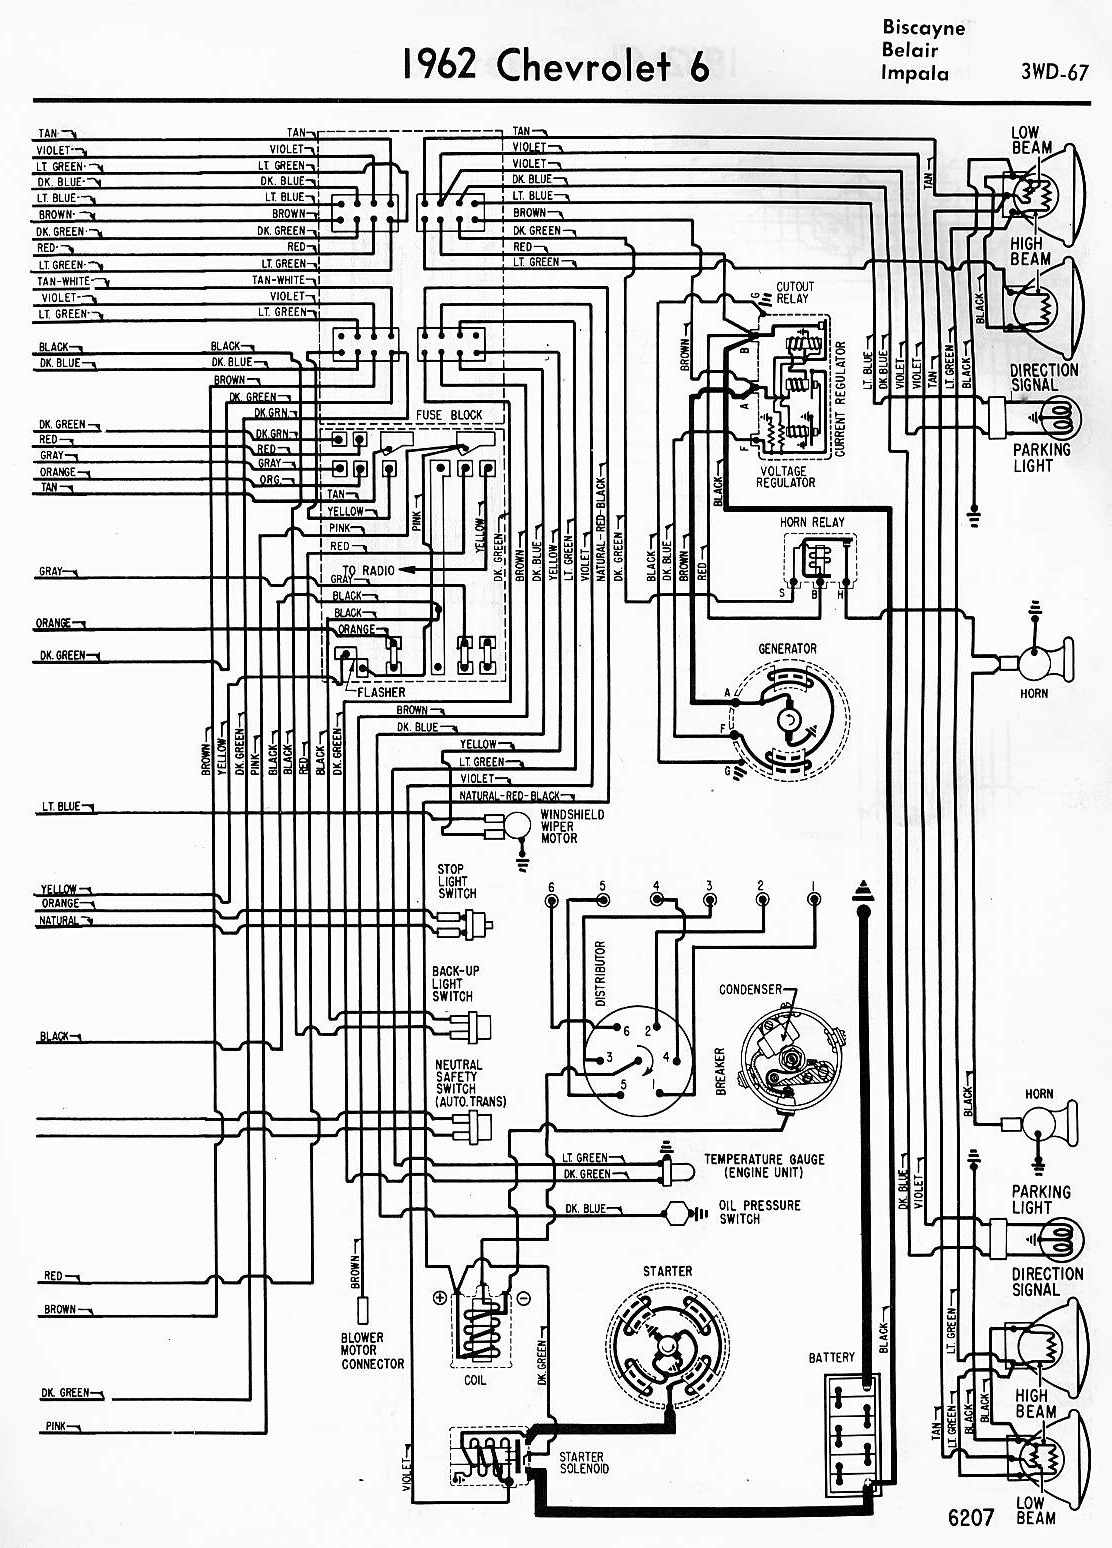 Electrical+Wiring+Diagram+Of+1964+Chevrolet+6 electrical wiring diagram of 1962 chevrolet 6 all about wiring  at edmiracle.co